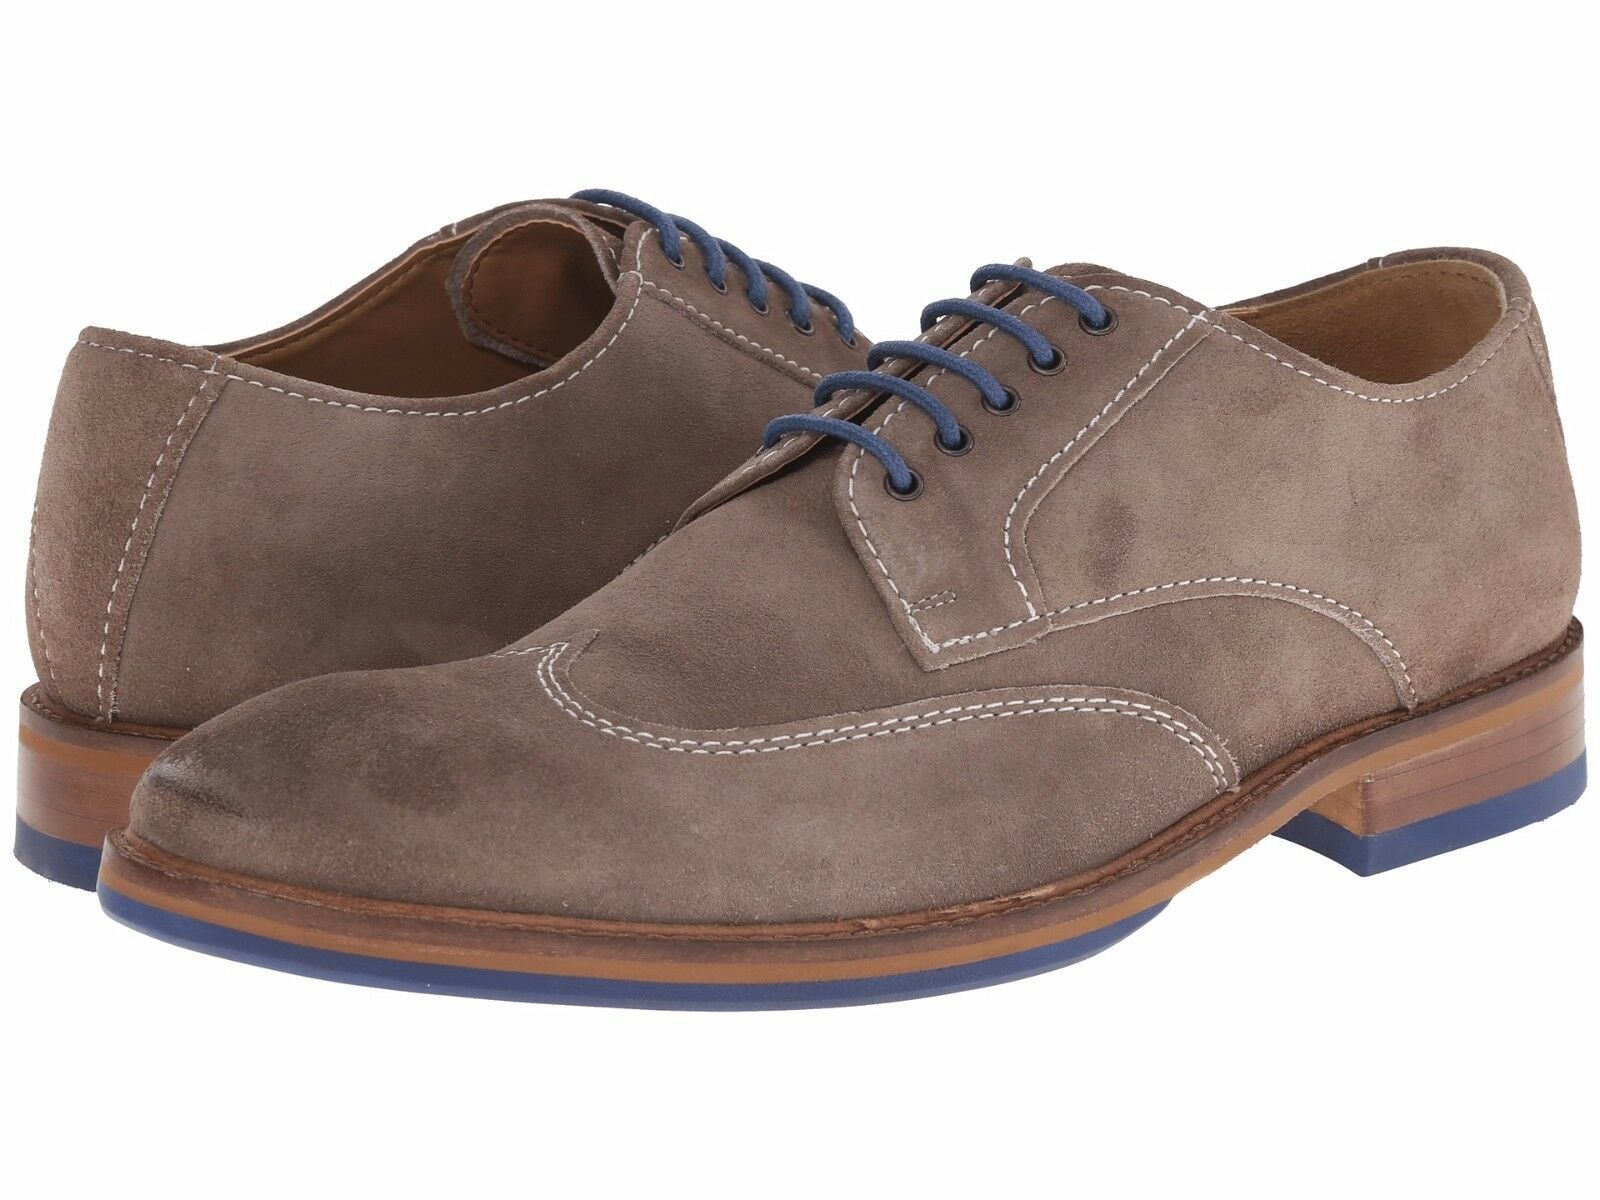 Men's shoes Kenneth Cole Move-Ment Suede Lace Up Oxford SMF5SU012 Grey New